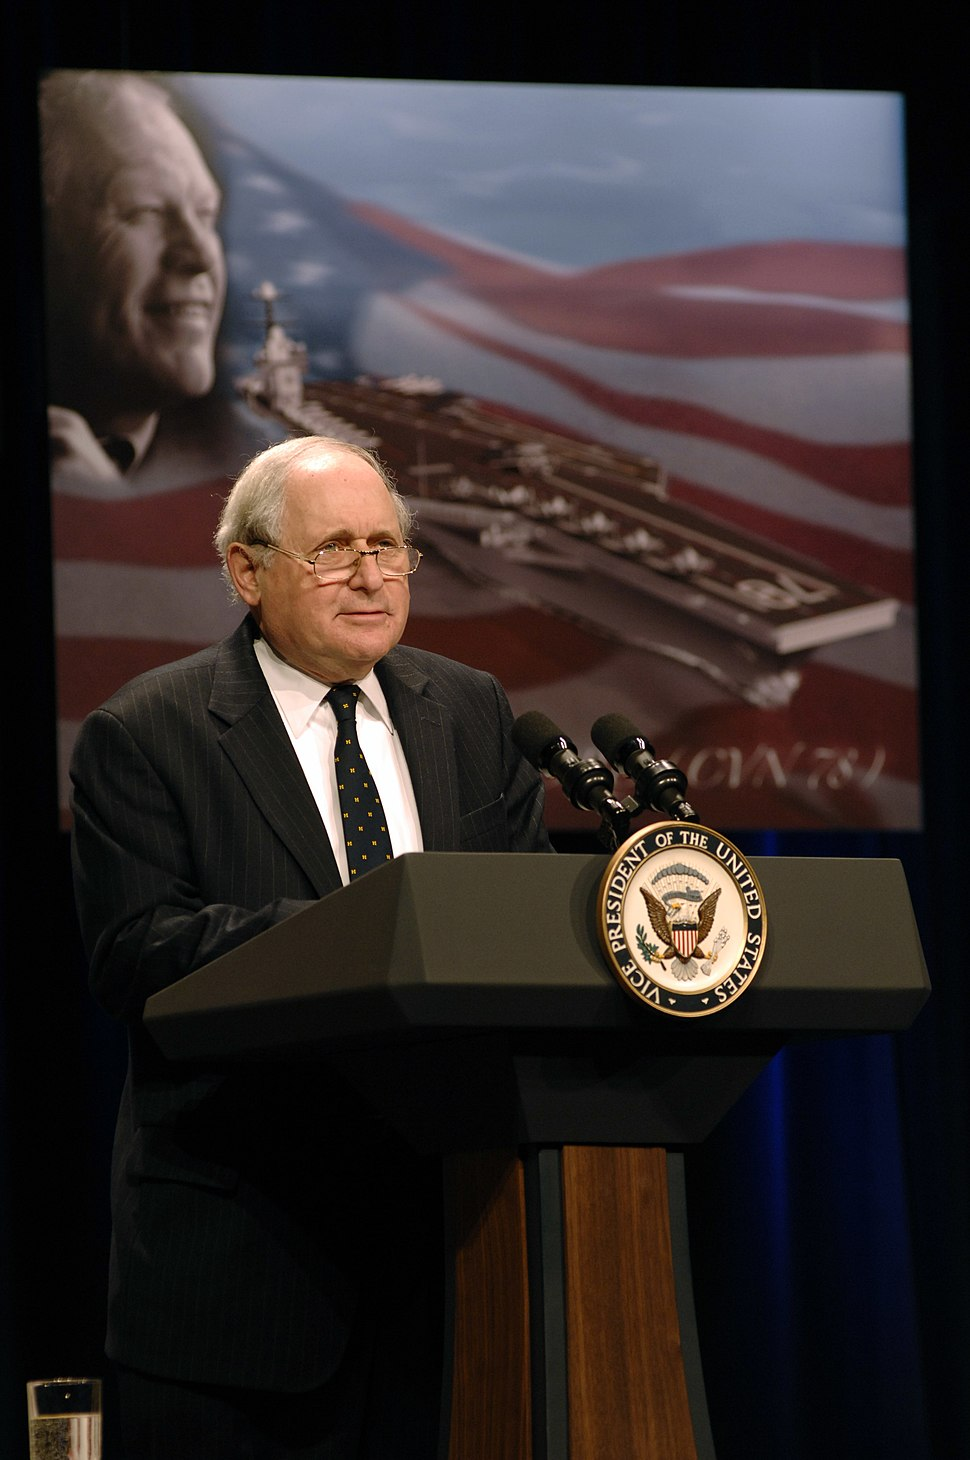 US Navy 070116-N-3642E-104 Sen. Carl Levin speaks to an audience of 300 during the official naming ceremony of the USS Gerald R. Ford (CVN 78), the first aircraft carrier in the Ford class of carriers